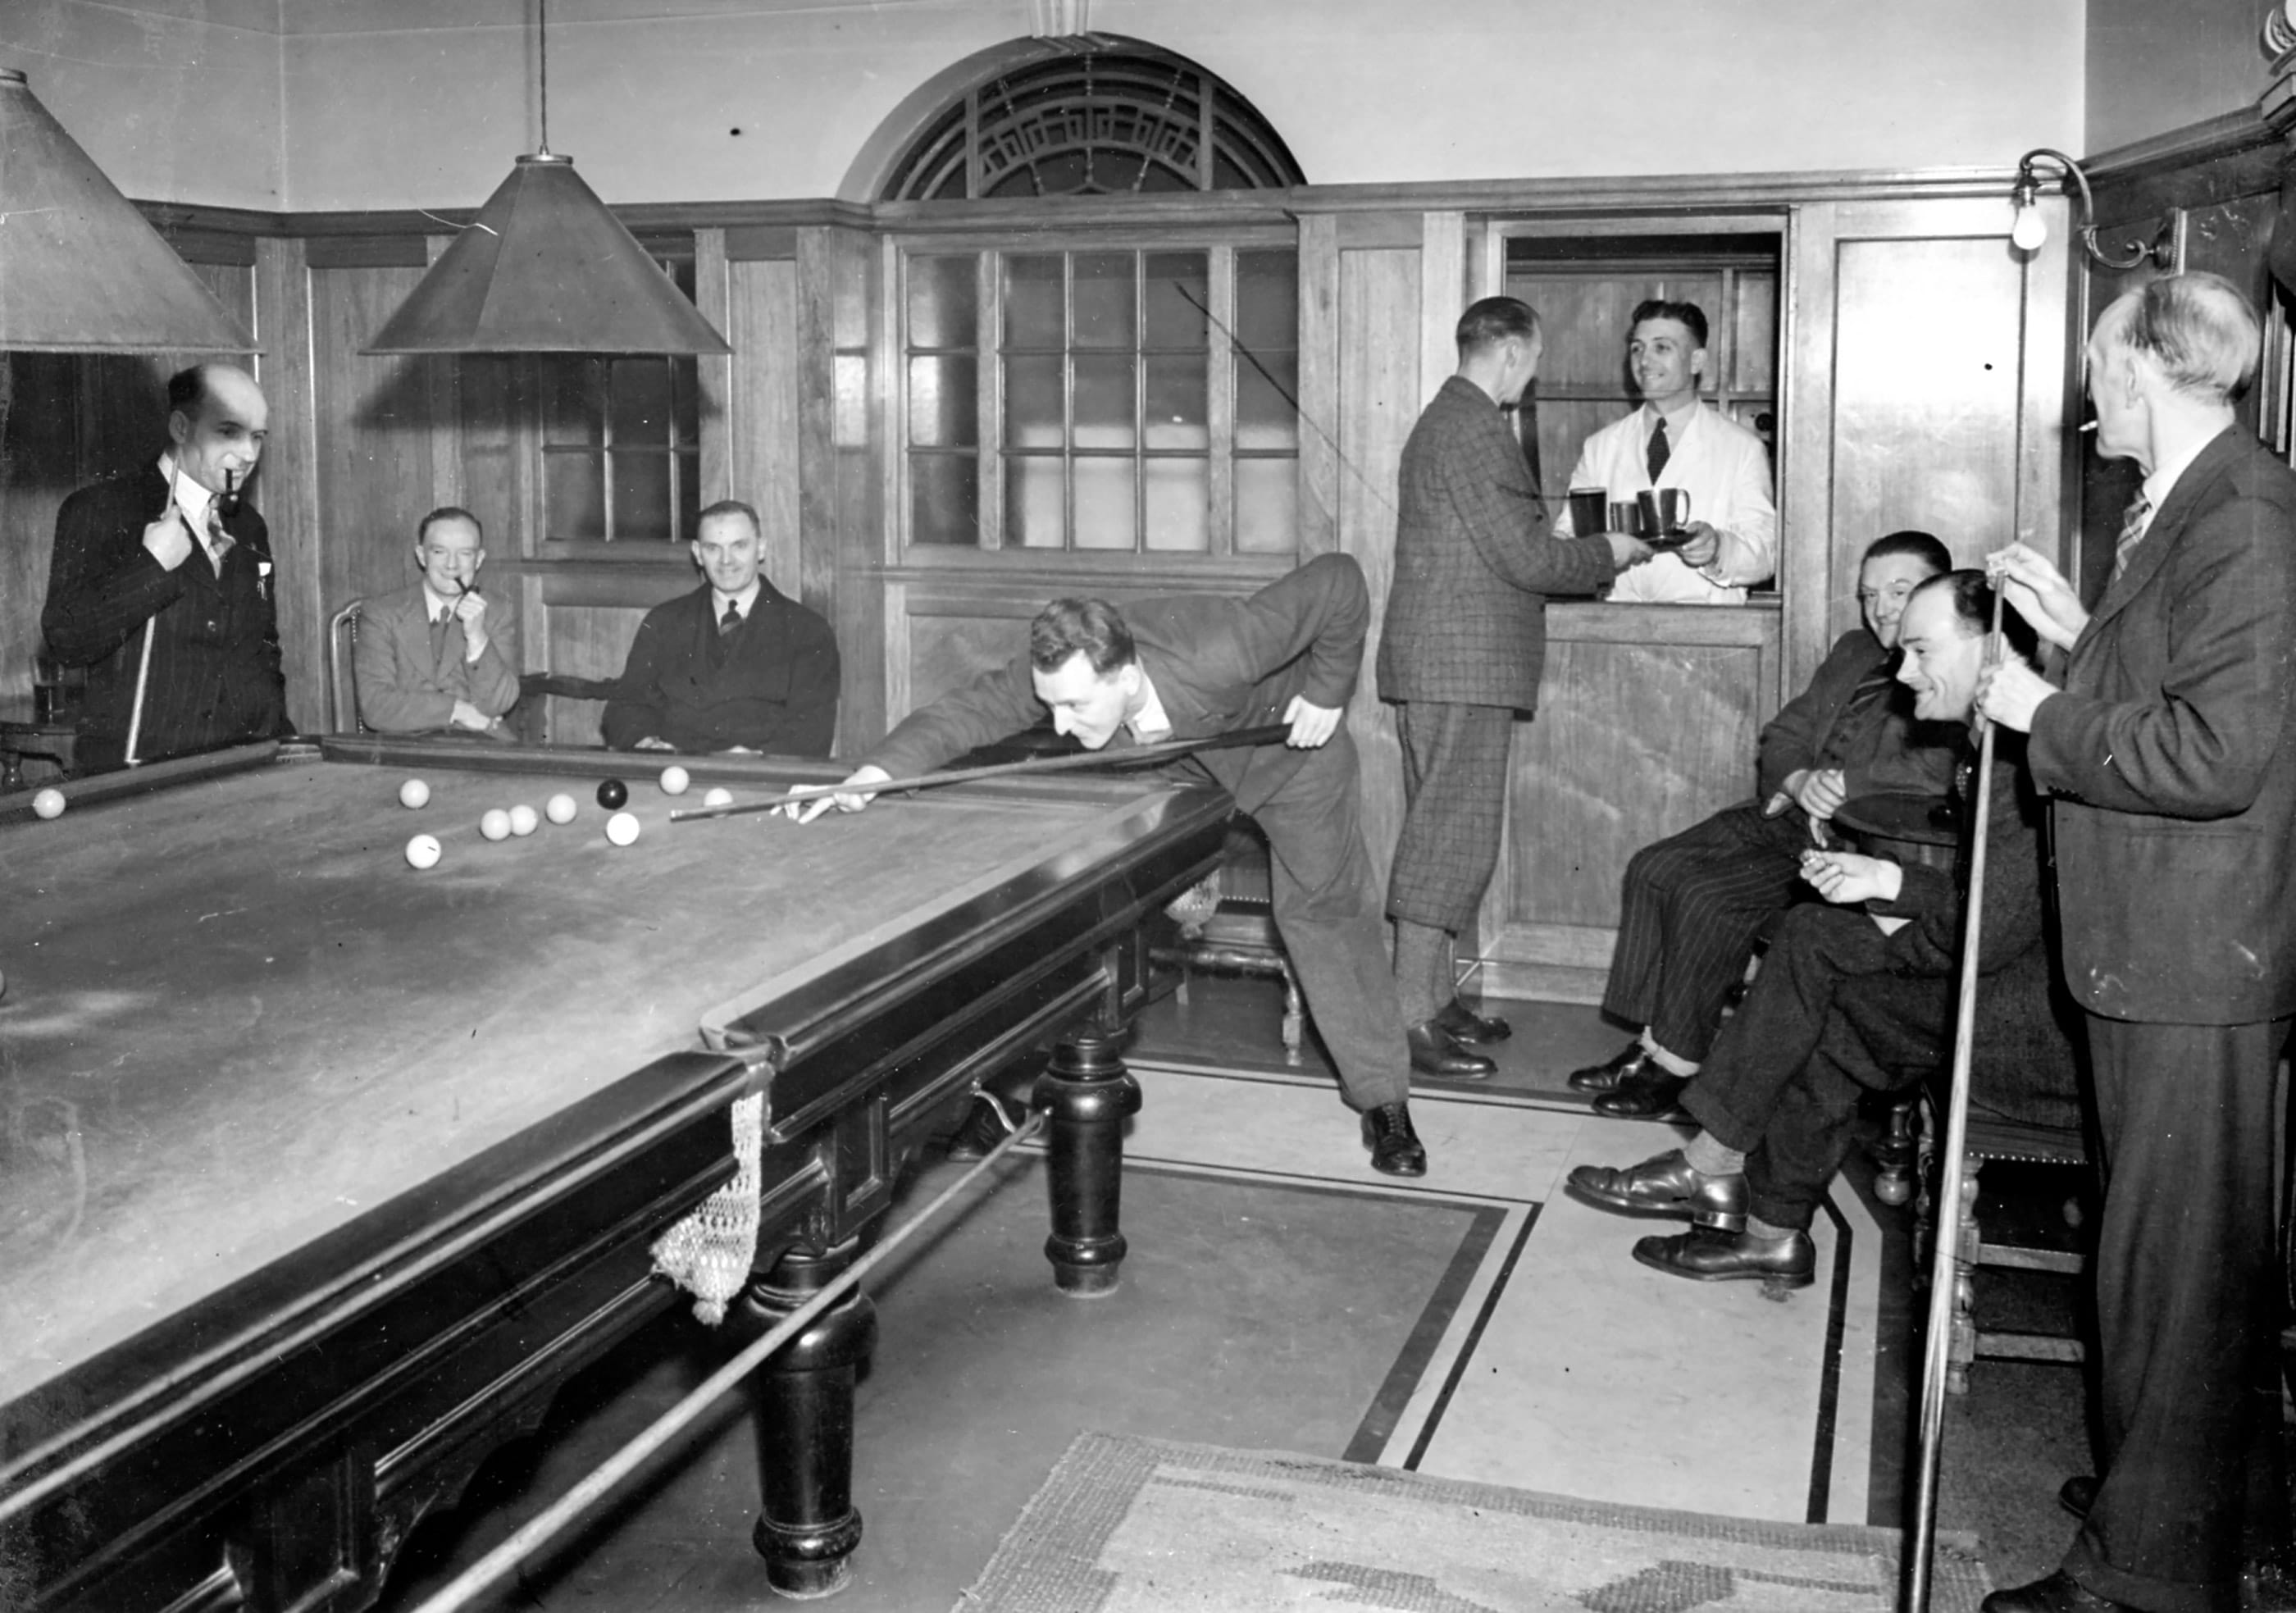 Snooker - The Crown Inn, Stanwix